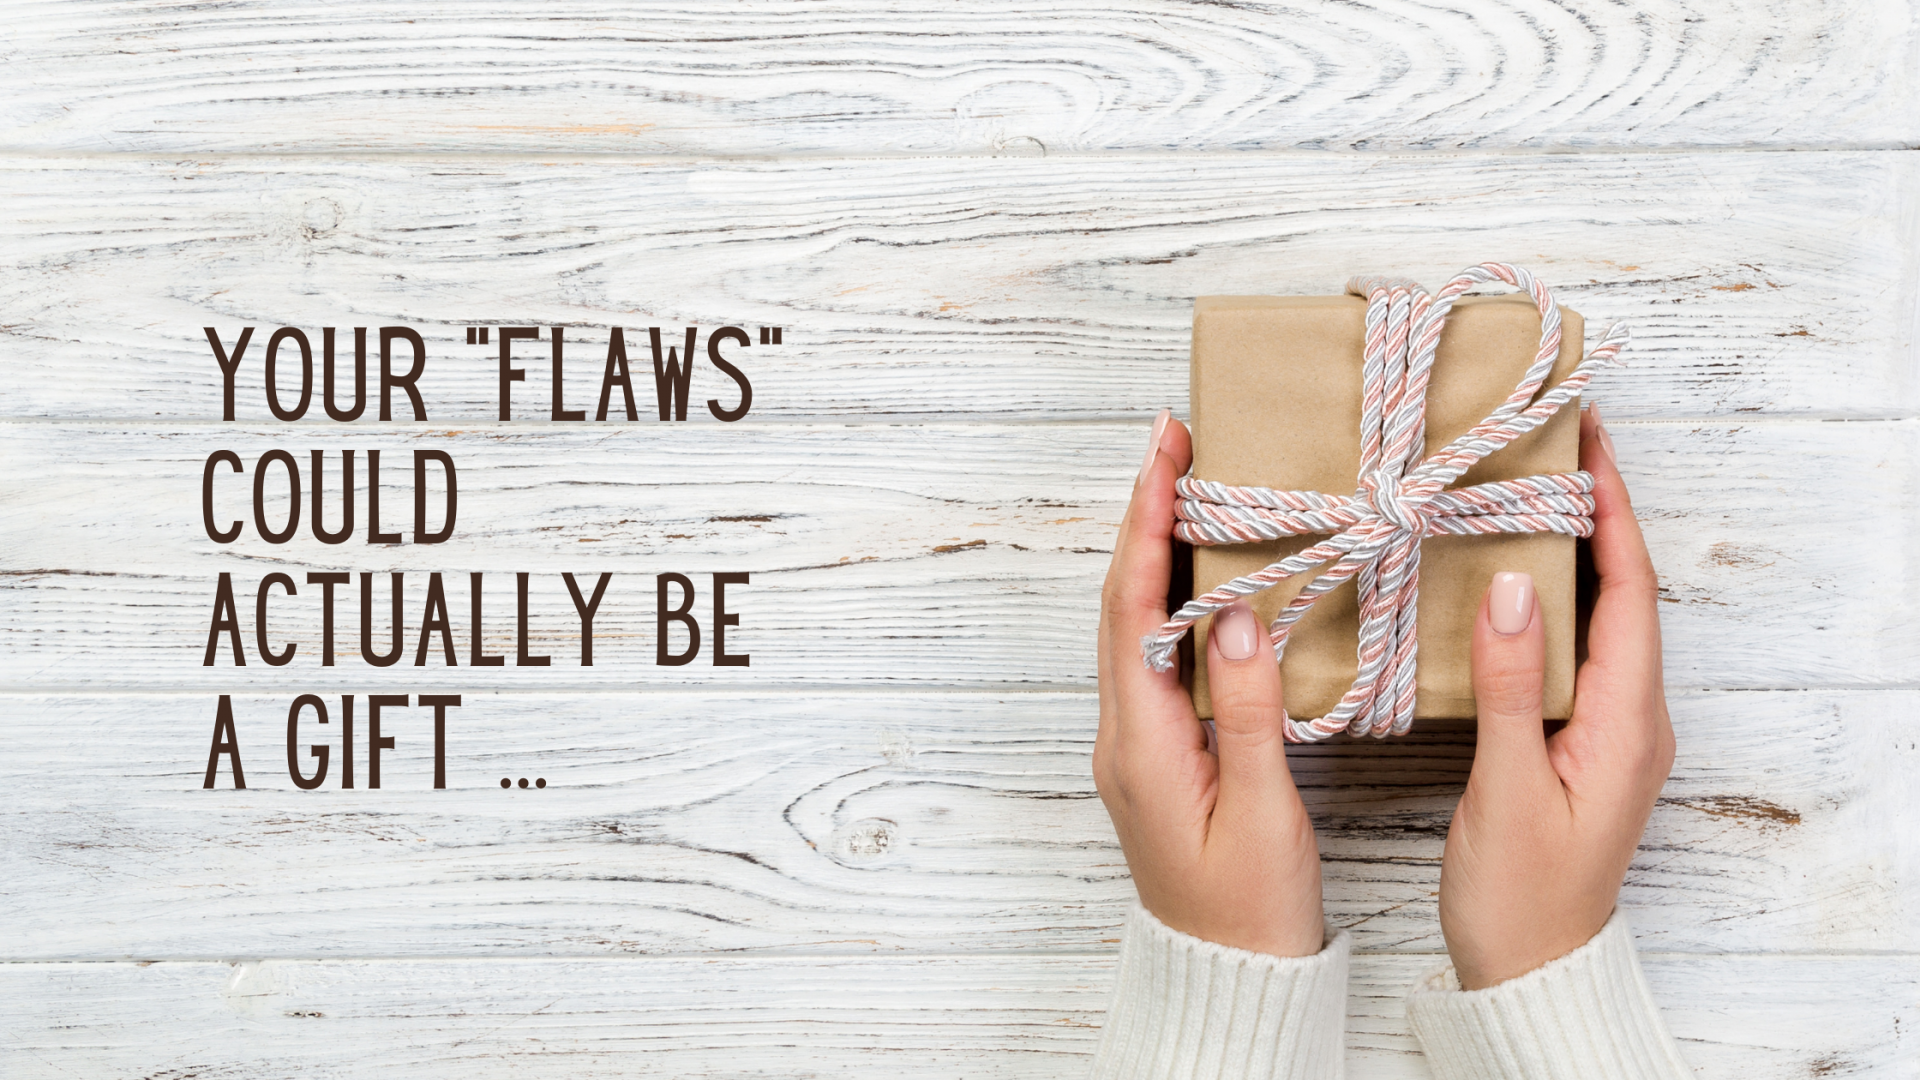 Your flaws could be a gift